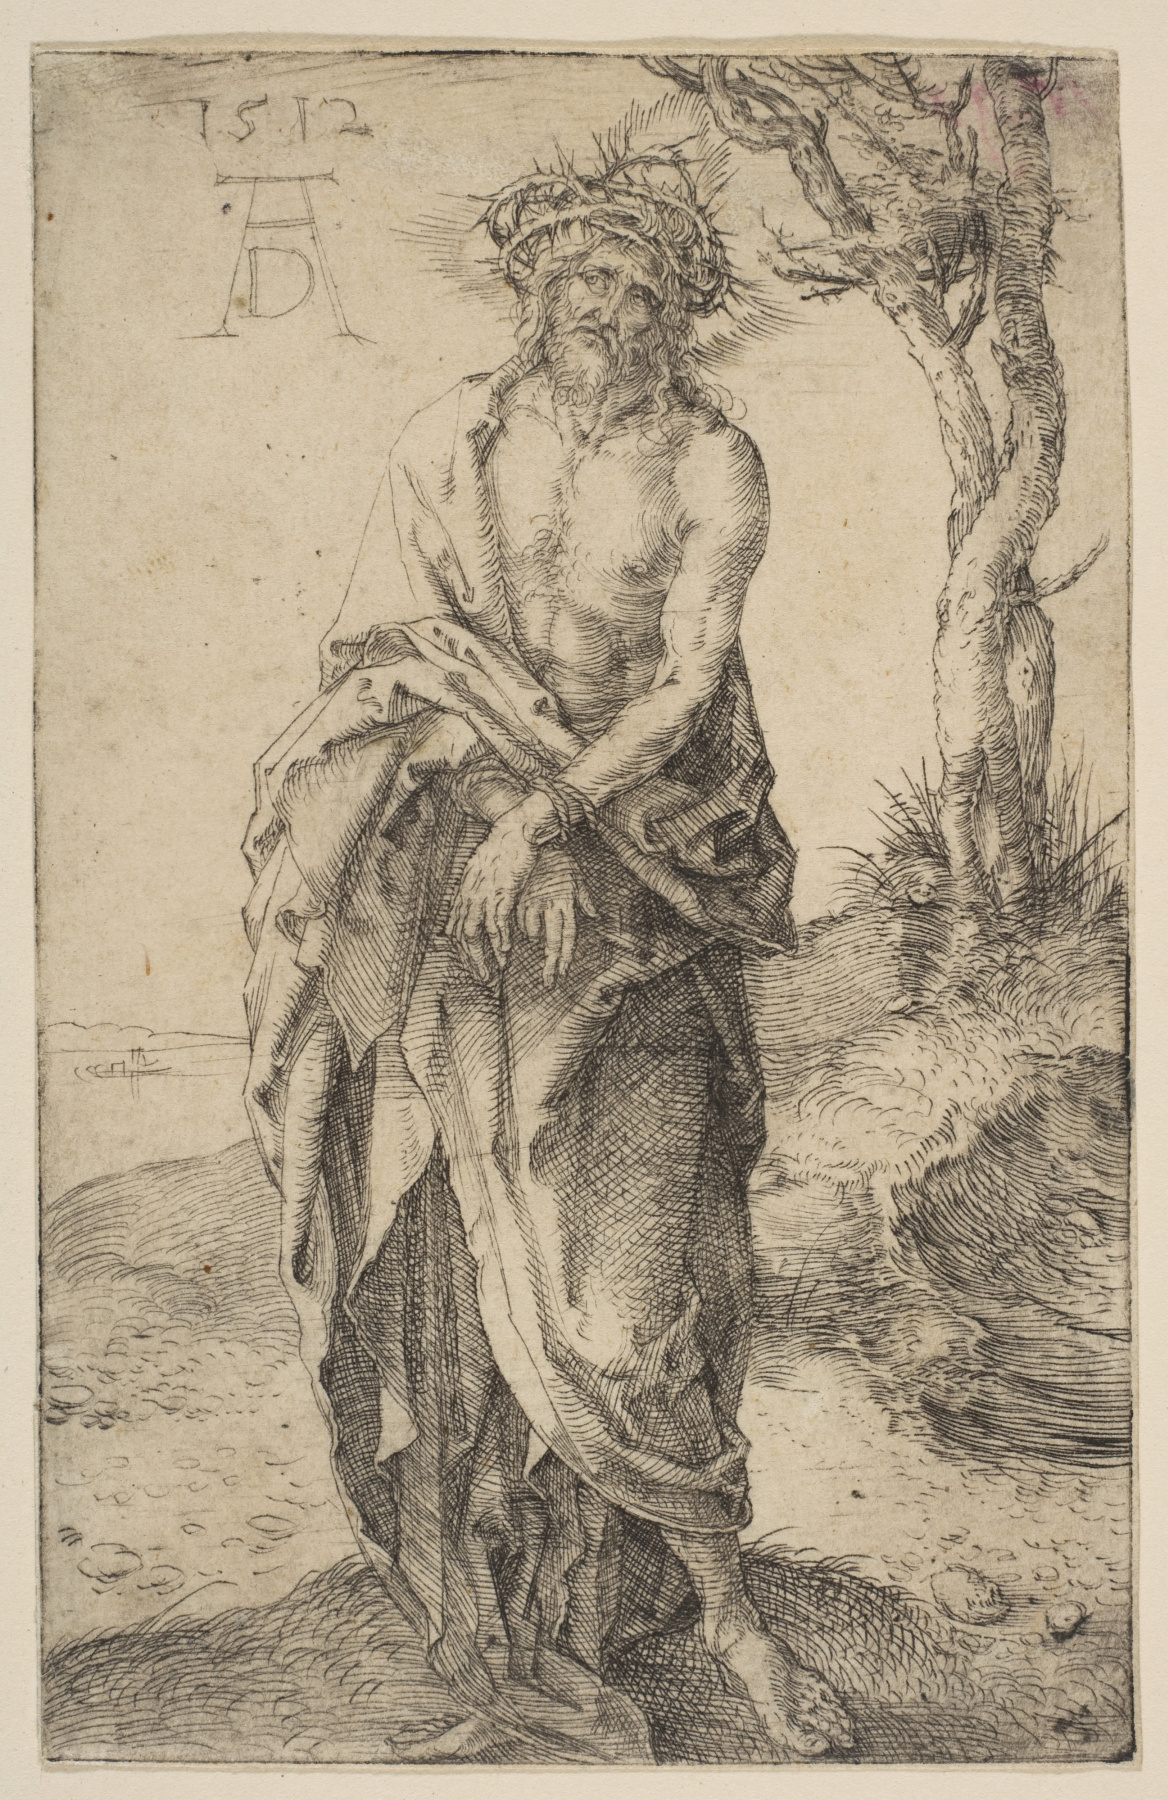 Albrecht Dürer. A man of sorrows and with his hands tied